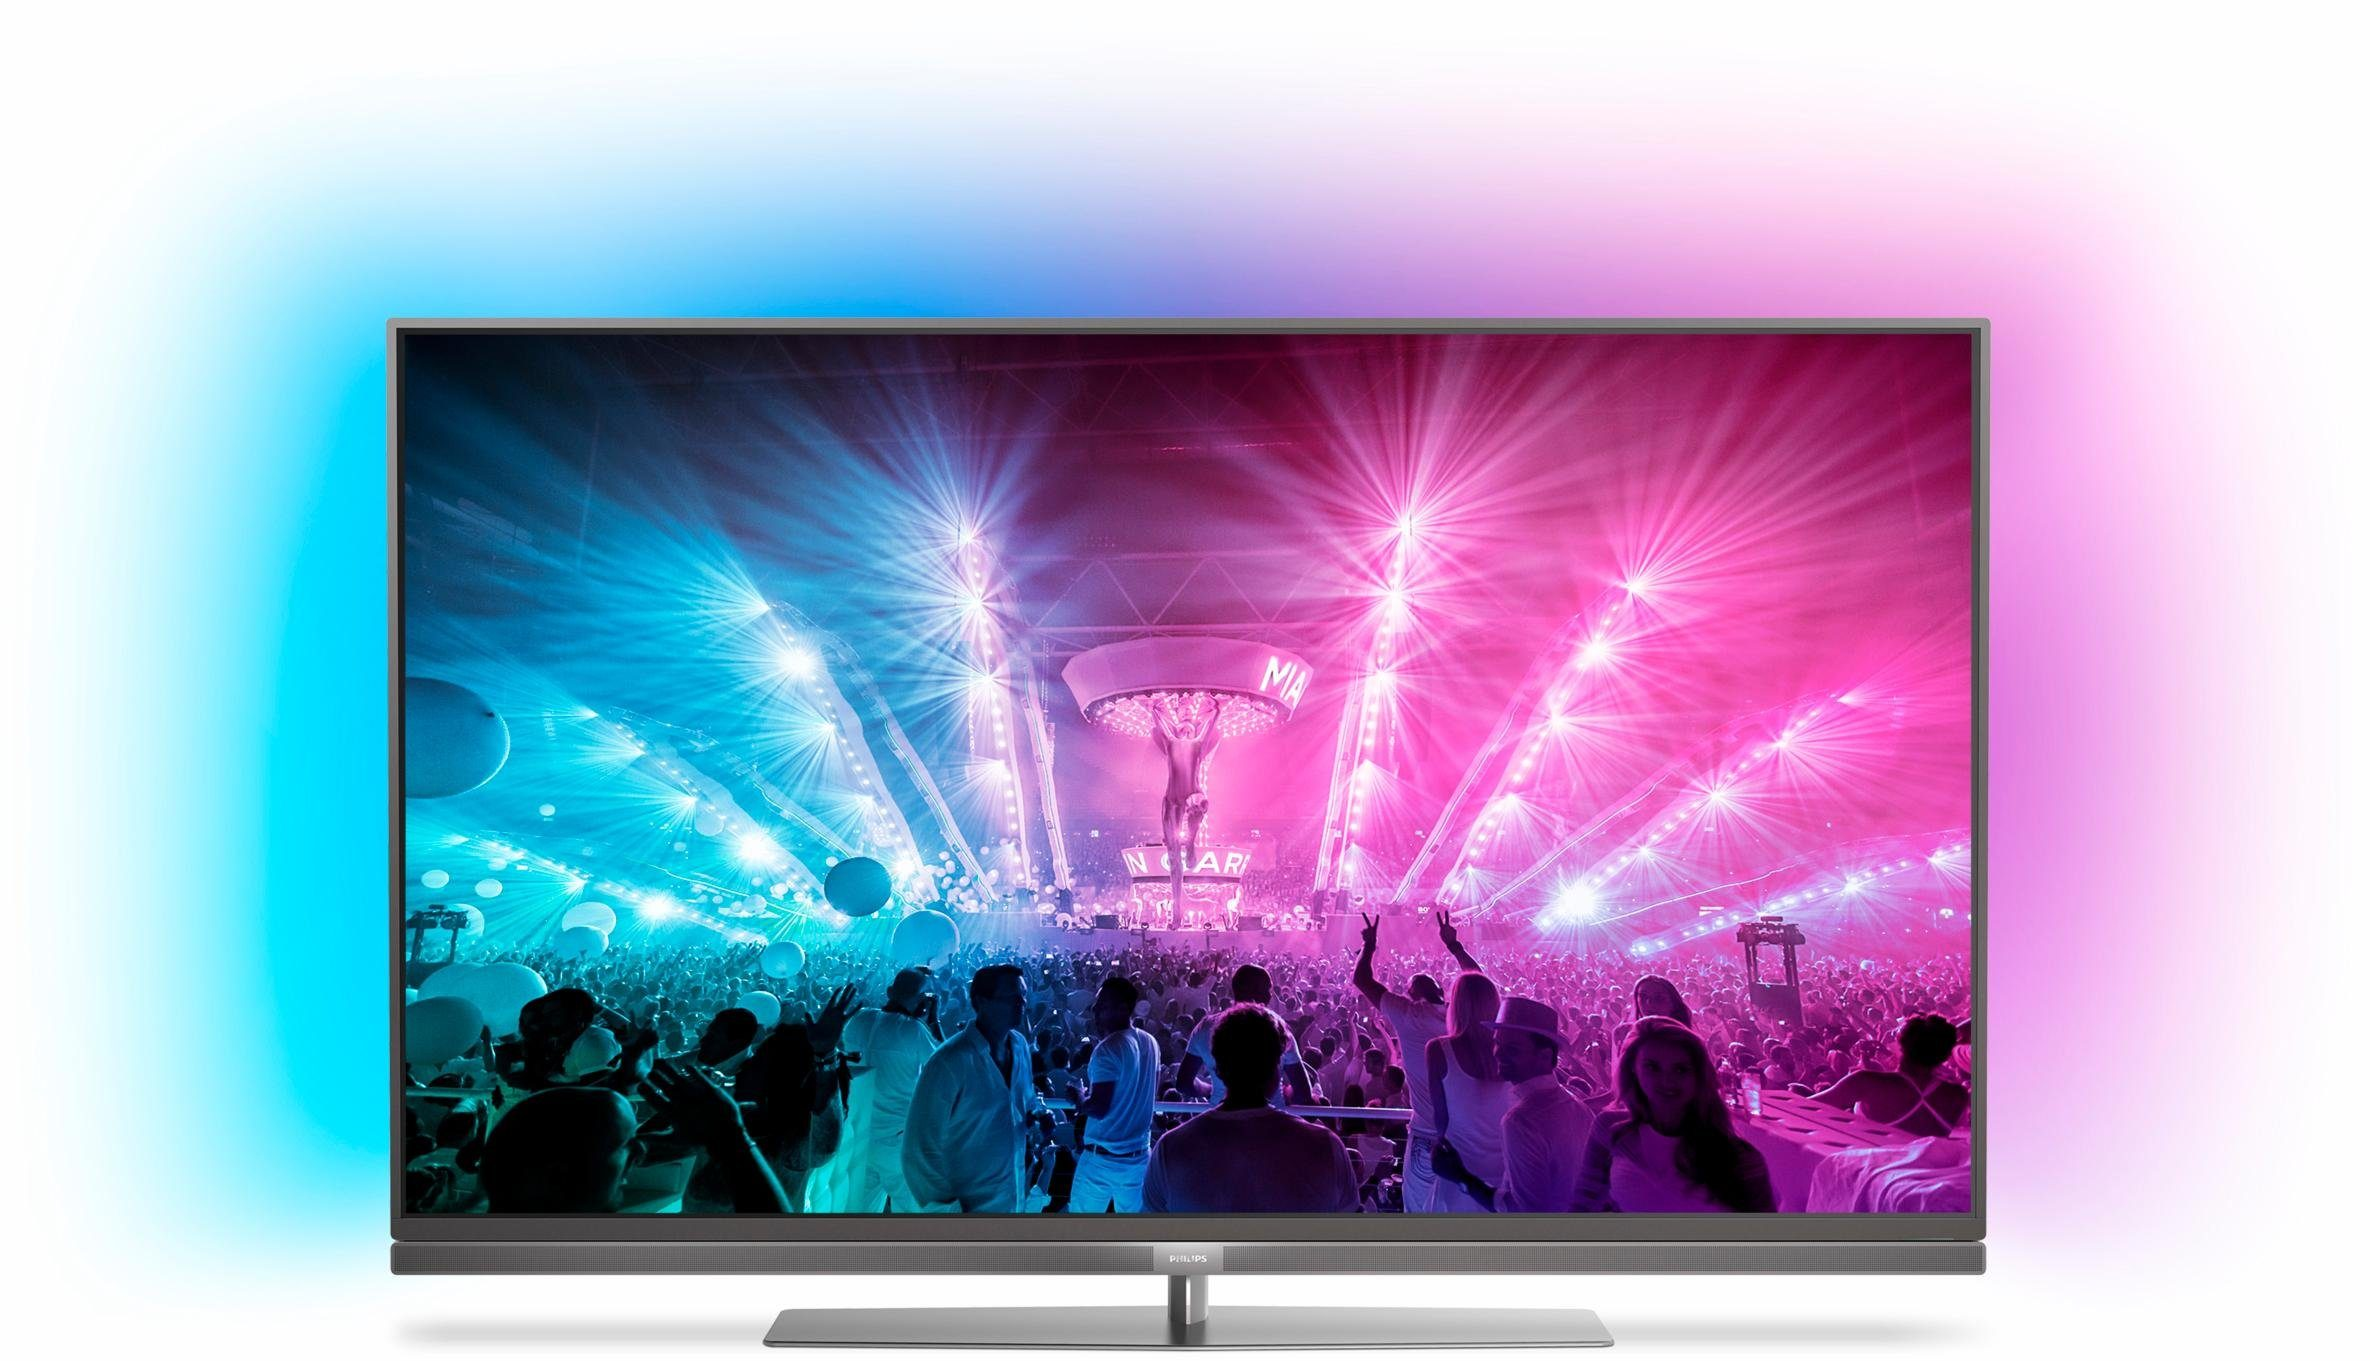 Philips 49PUS7181/12, LED Fernseher, 123 cm (49 Zoll), 2160p (4K Ultra HD) Ambilight, Smart-TV